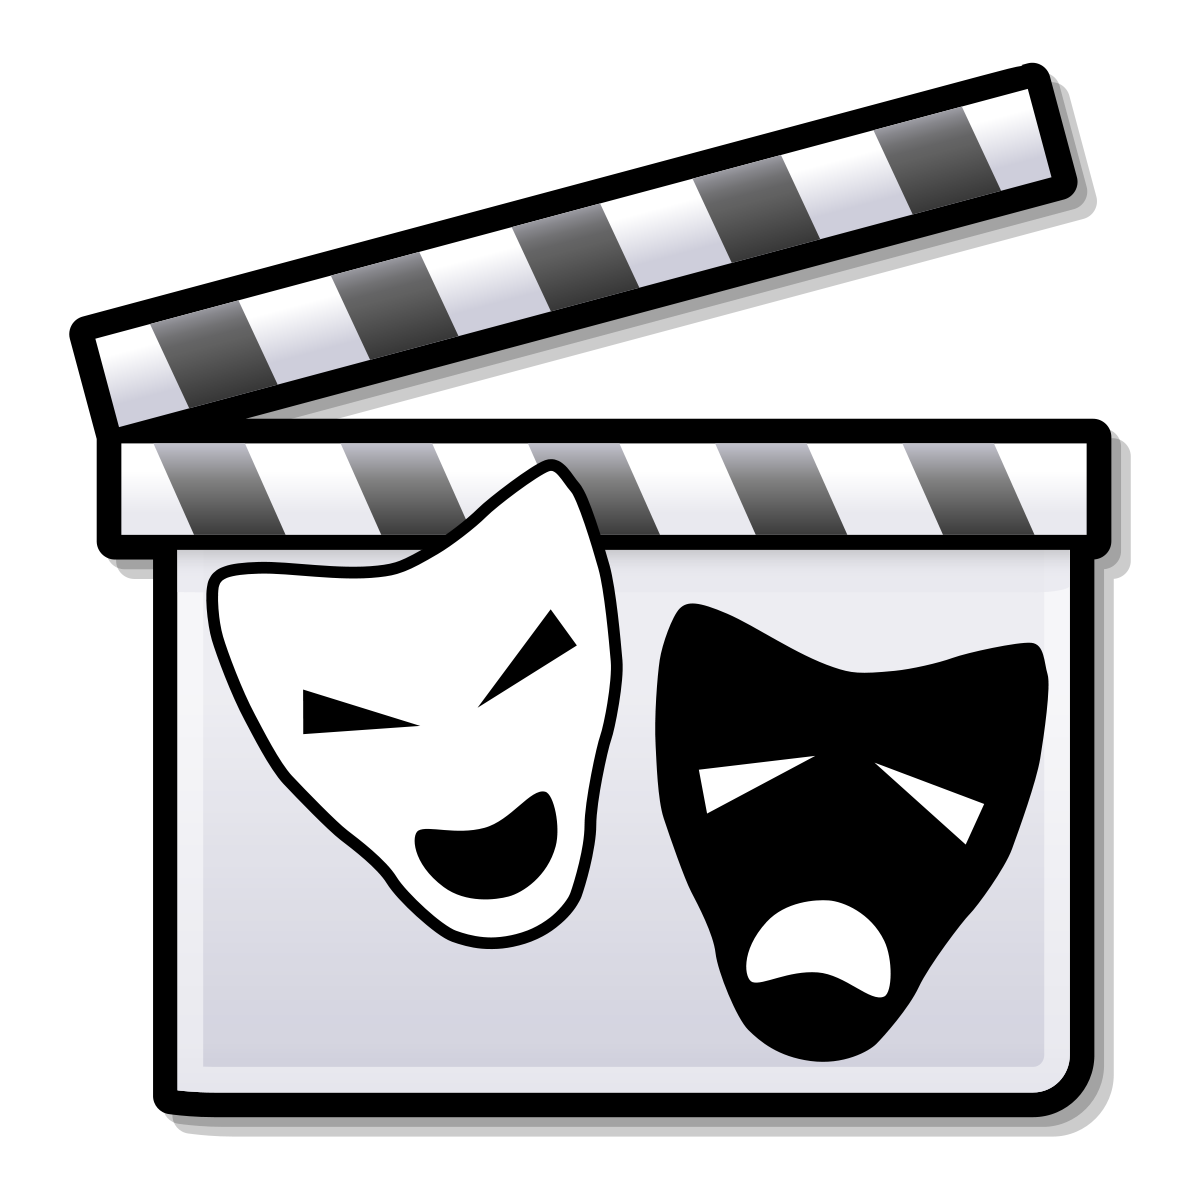 List of films wikipedia. Club clipart drama movie